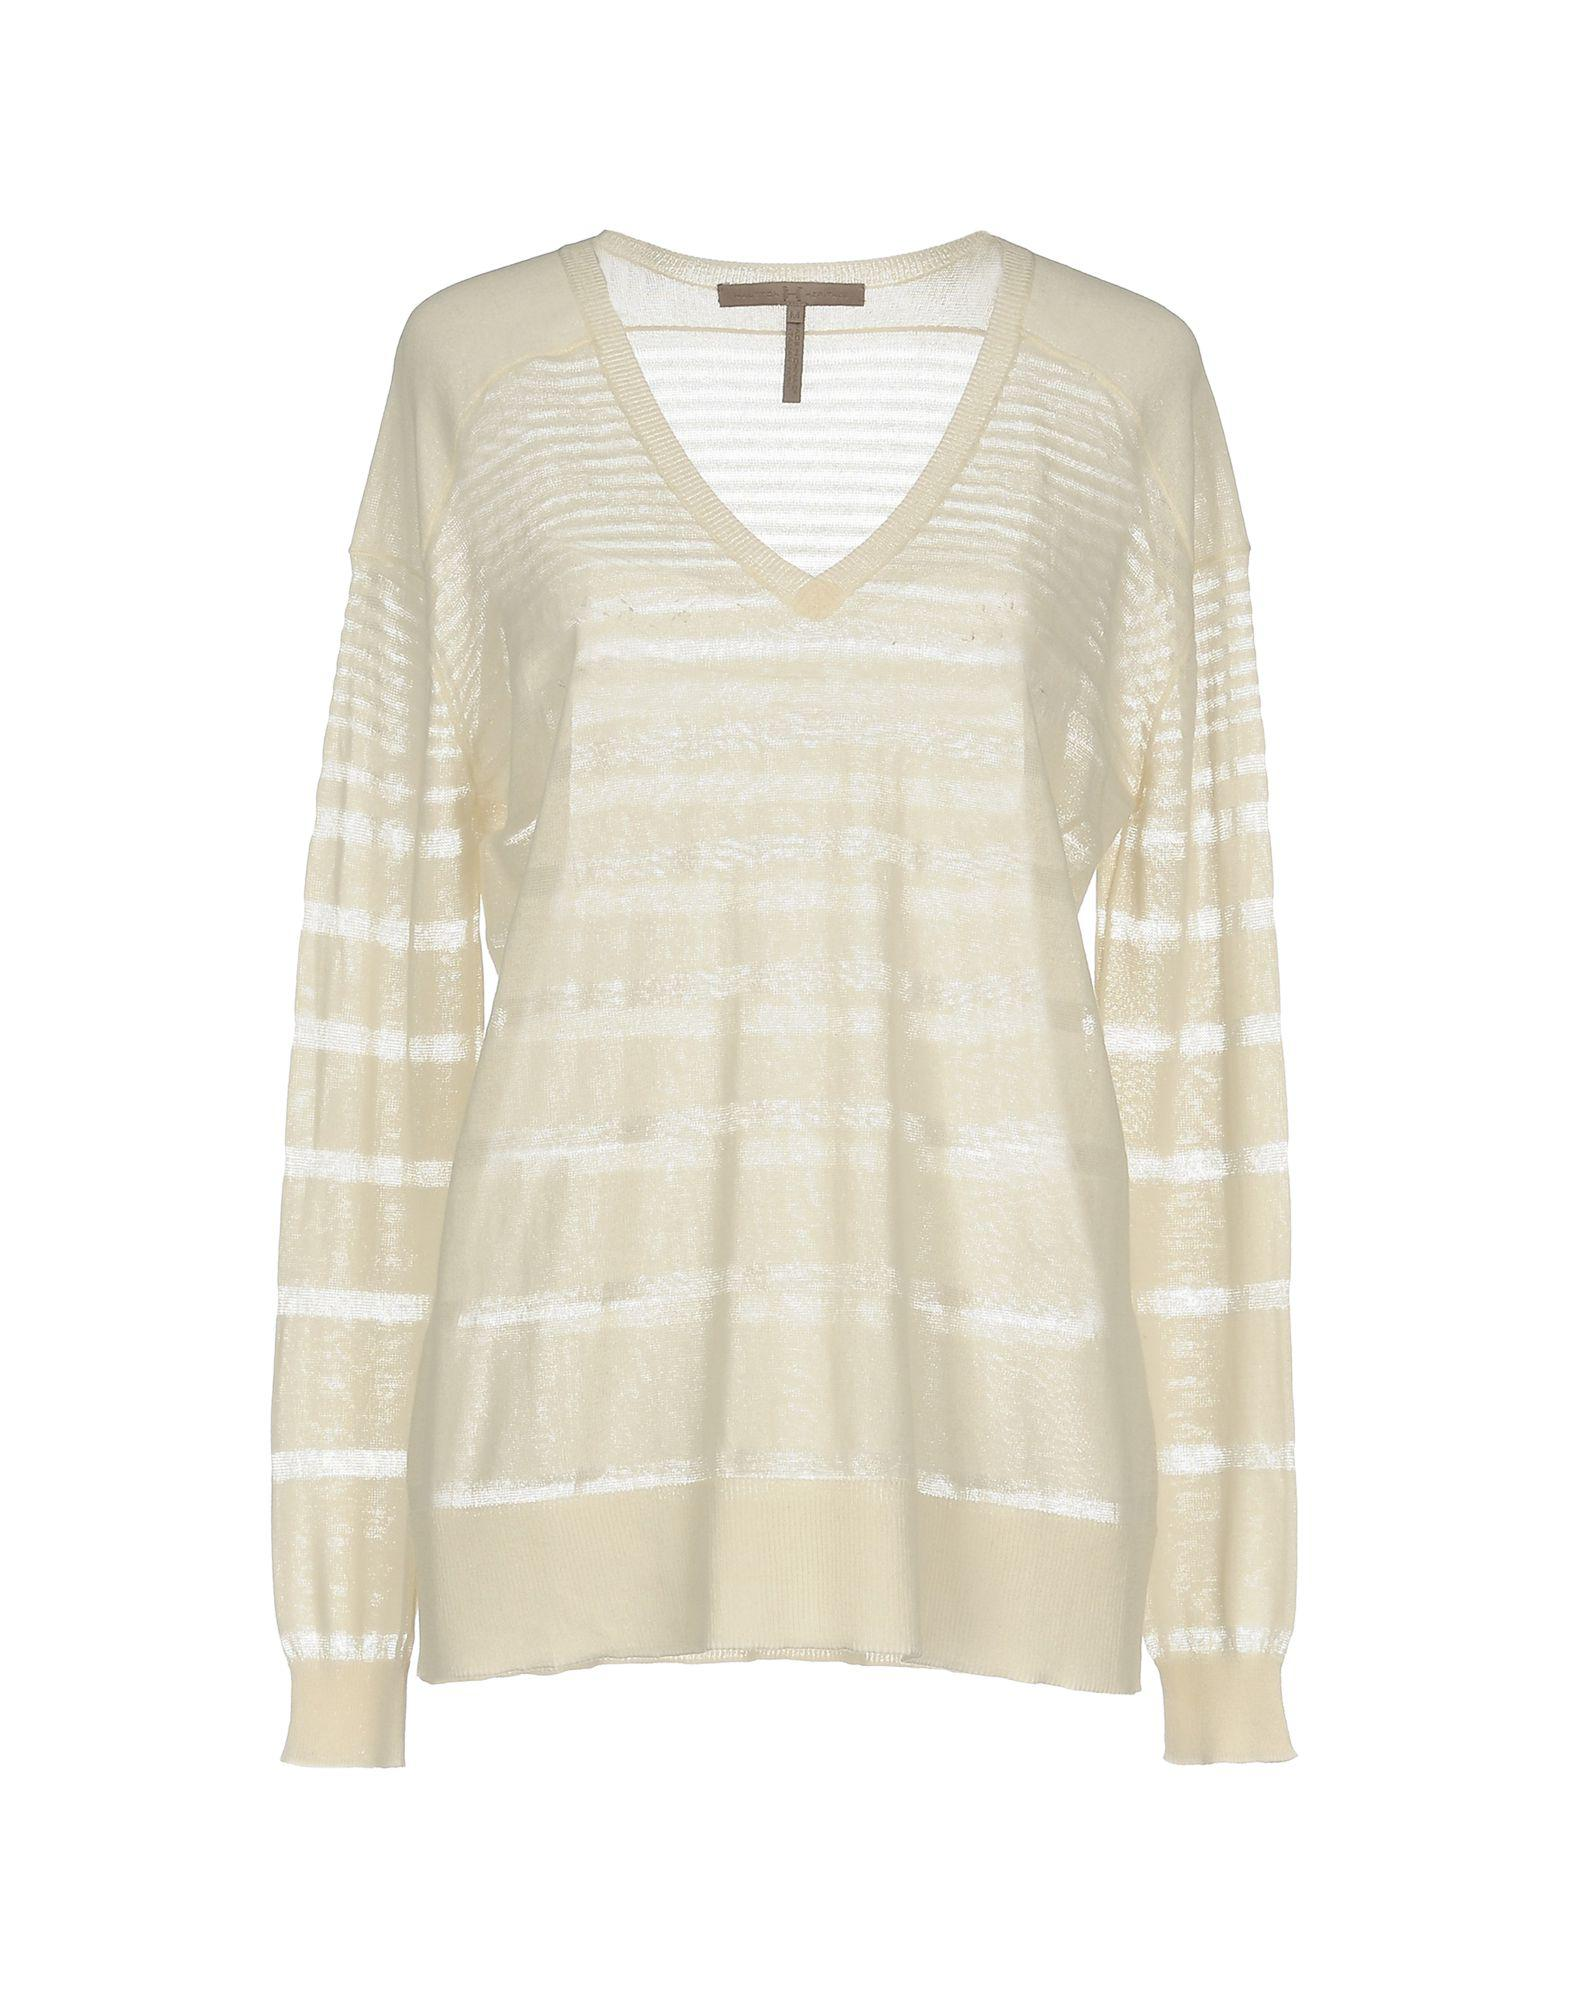 Halston Heritage Woman Chiffon-paneled Cutout Knitted Sweater Pastel Yellow Size XL Halston Heritage Eastbay Popular For Sale Find Great For Sale Cheap Price Wholesale aknIg